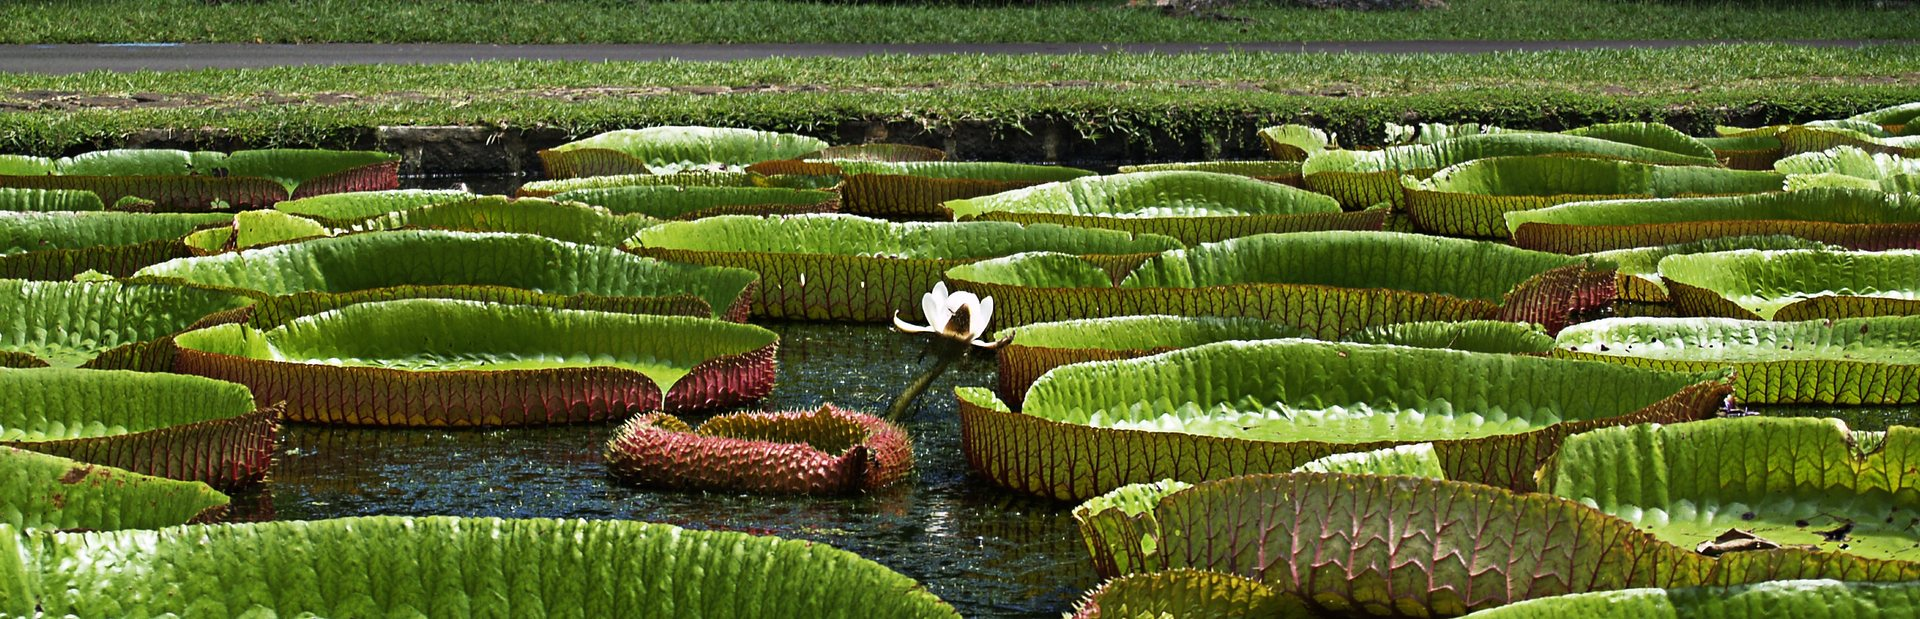 Giant water lilies